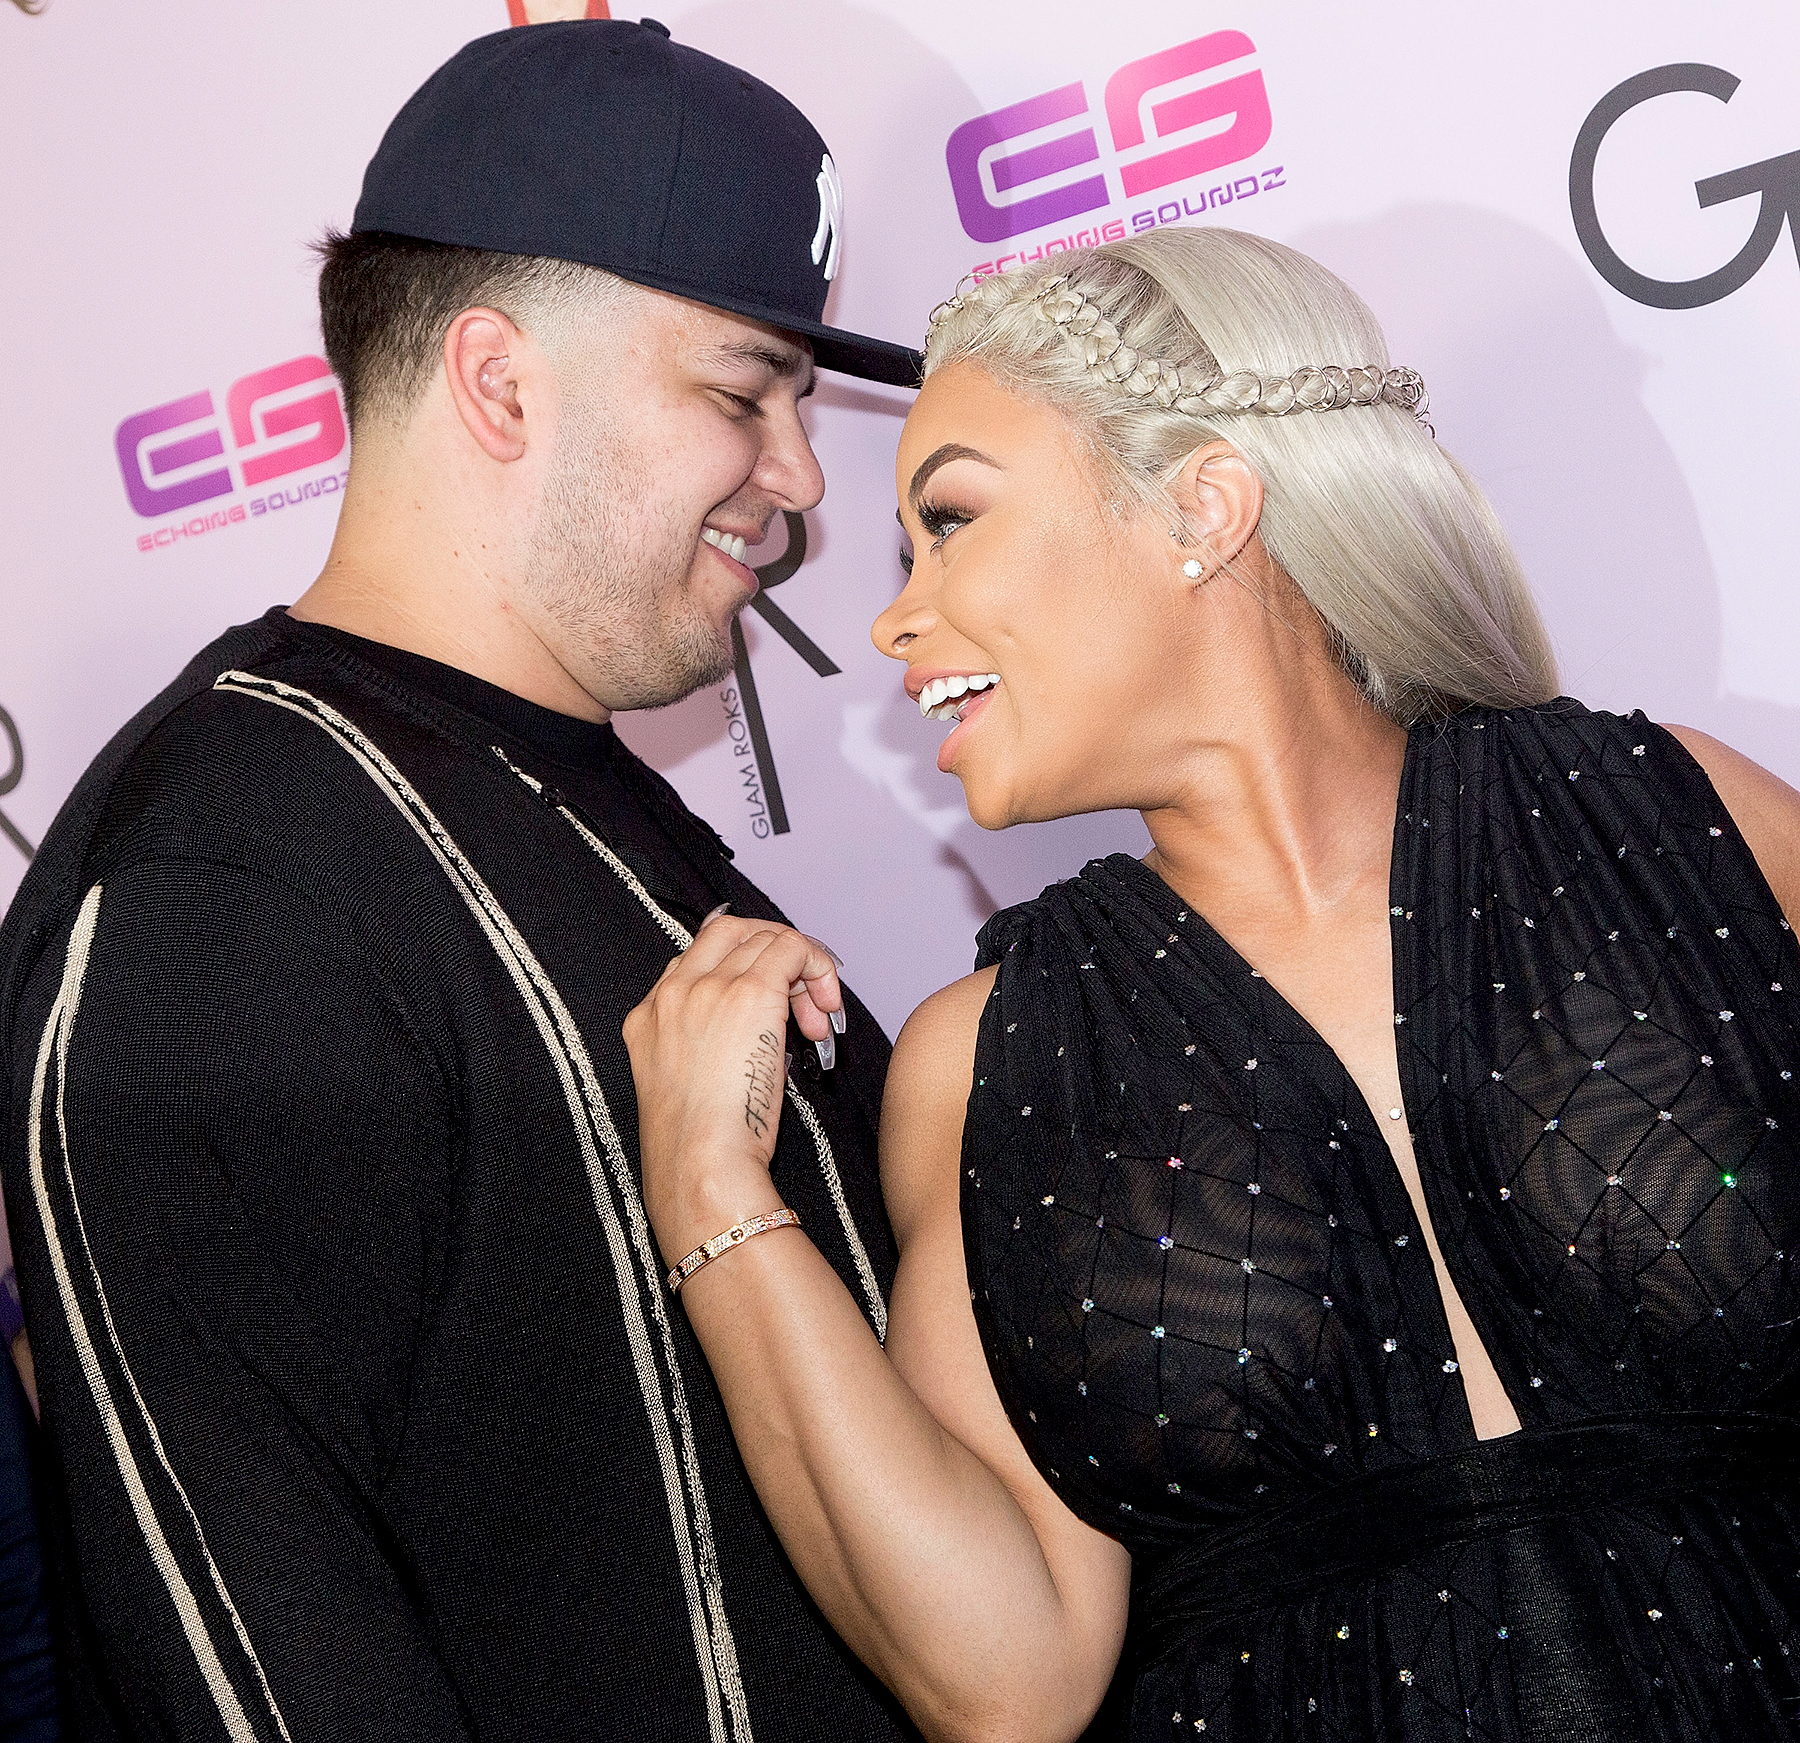 Blac Chyna and Rob Kardashian arrive for her birthday celebration and unveiling of her